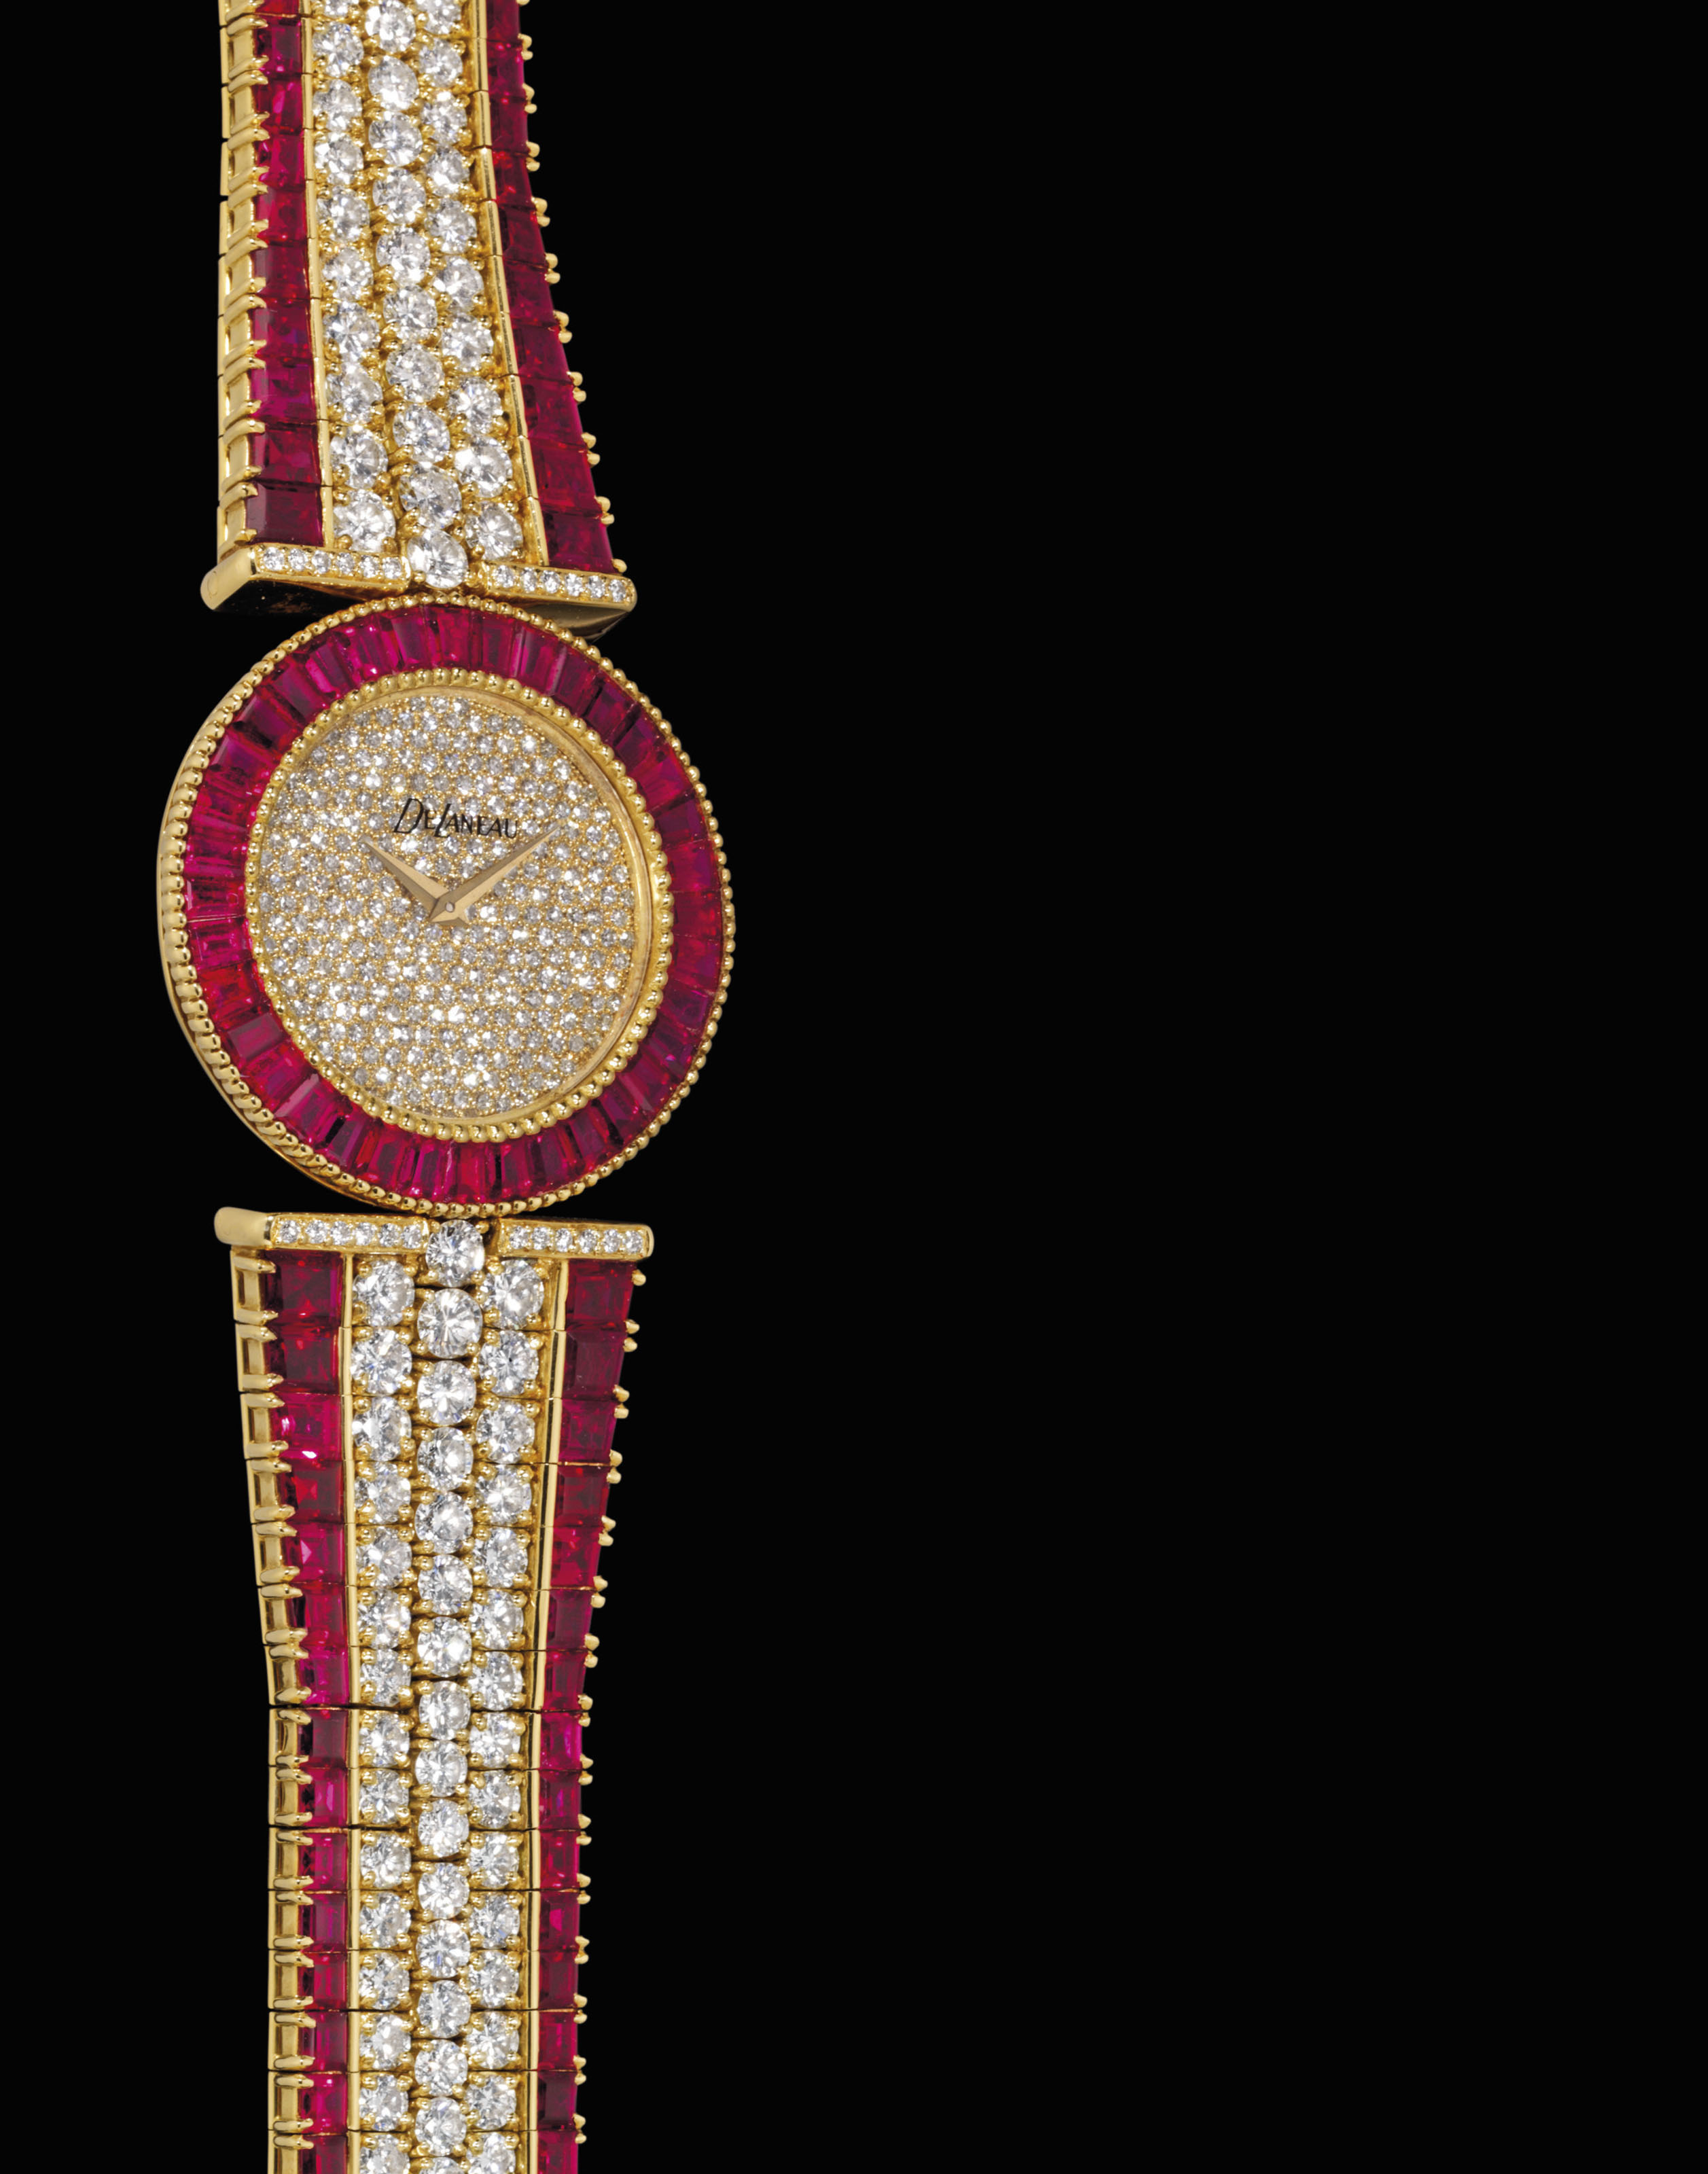 DELANEAU. A FINE AND RARE 18K GOLD, DIAMOND AND RUBY-SET BRACELET WATCH